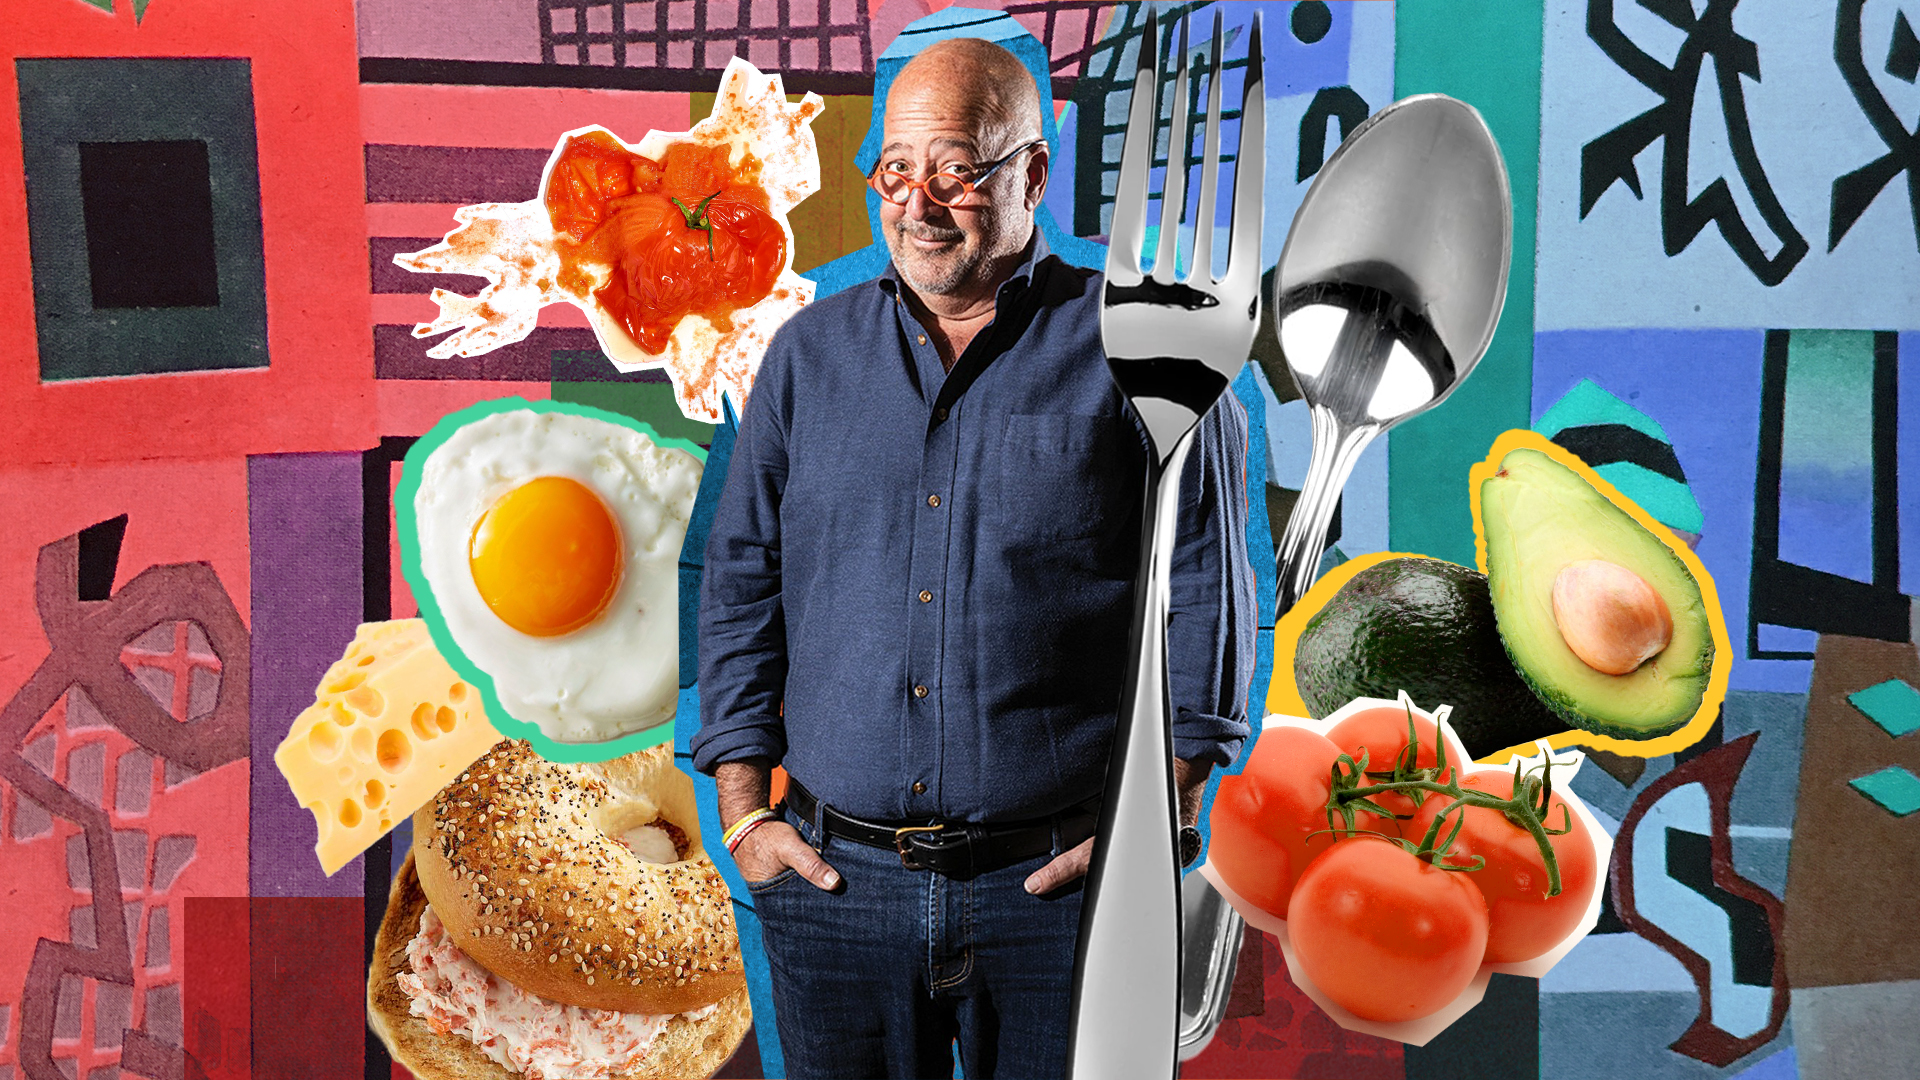 Growing pains and hunger pangs: Andrew Zimmern discusses food, politics, and COVID-19 at UD